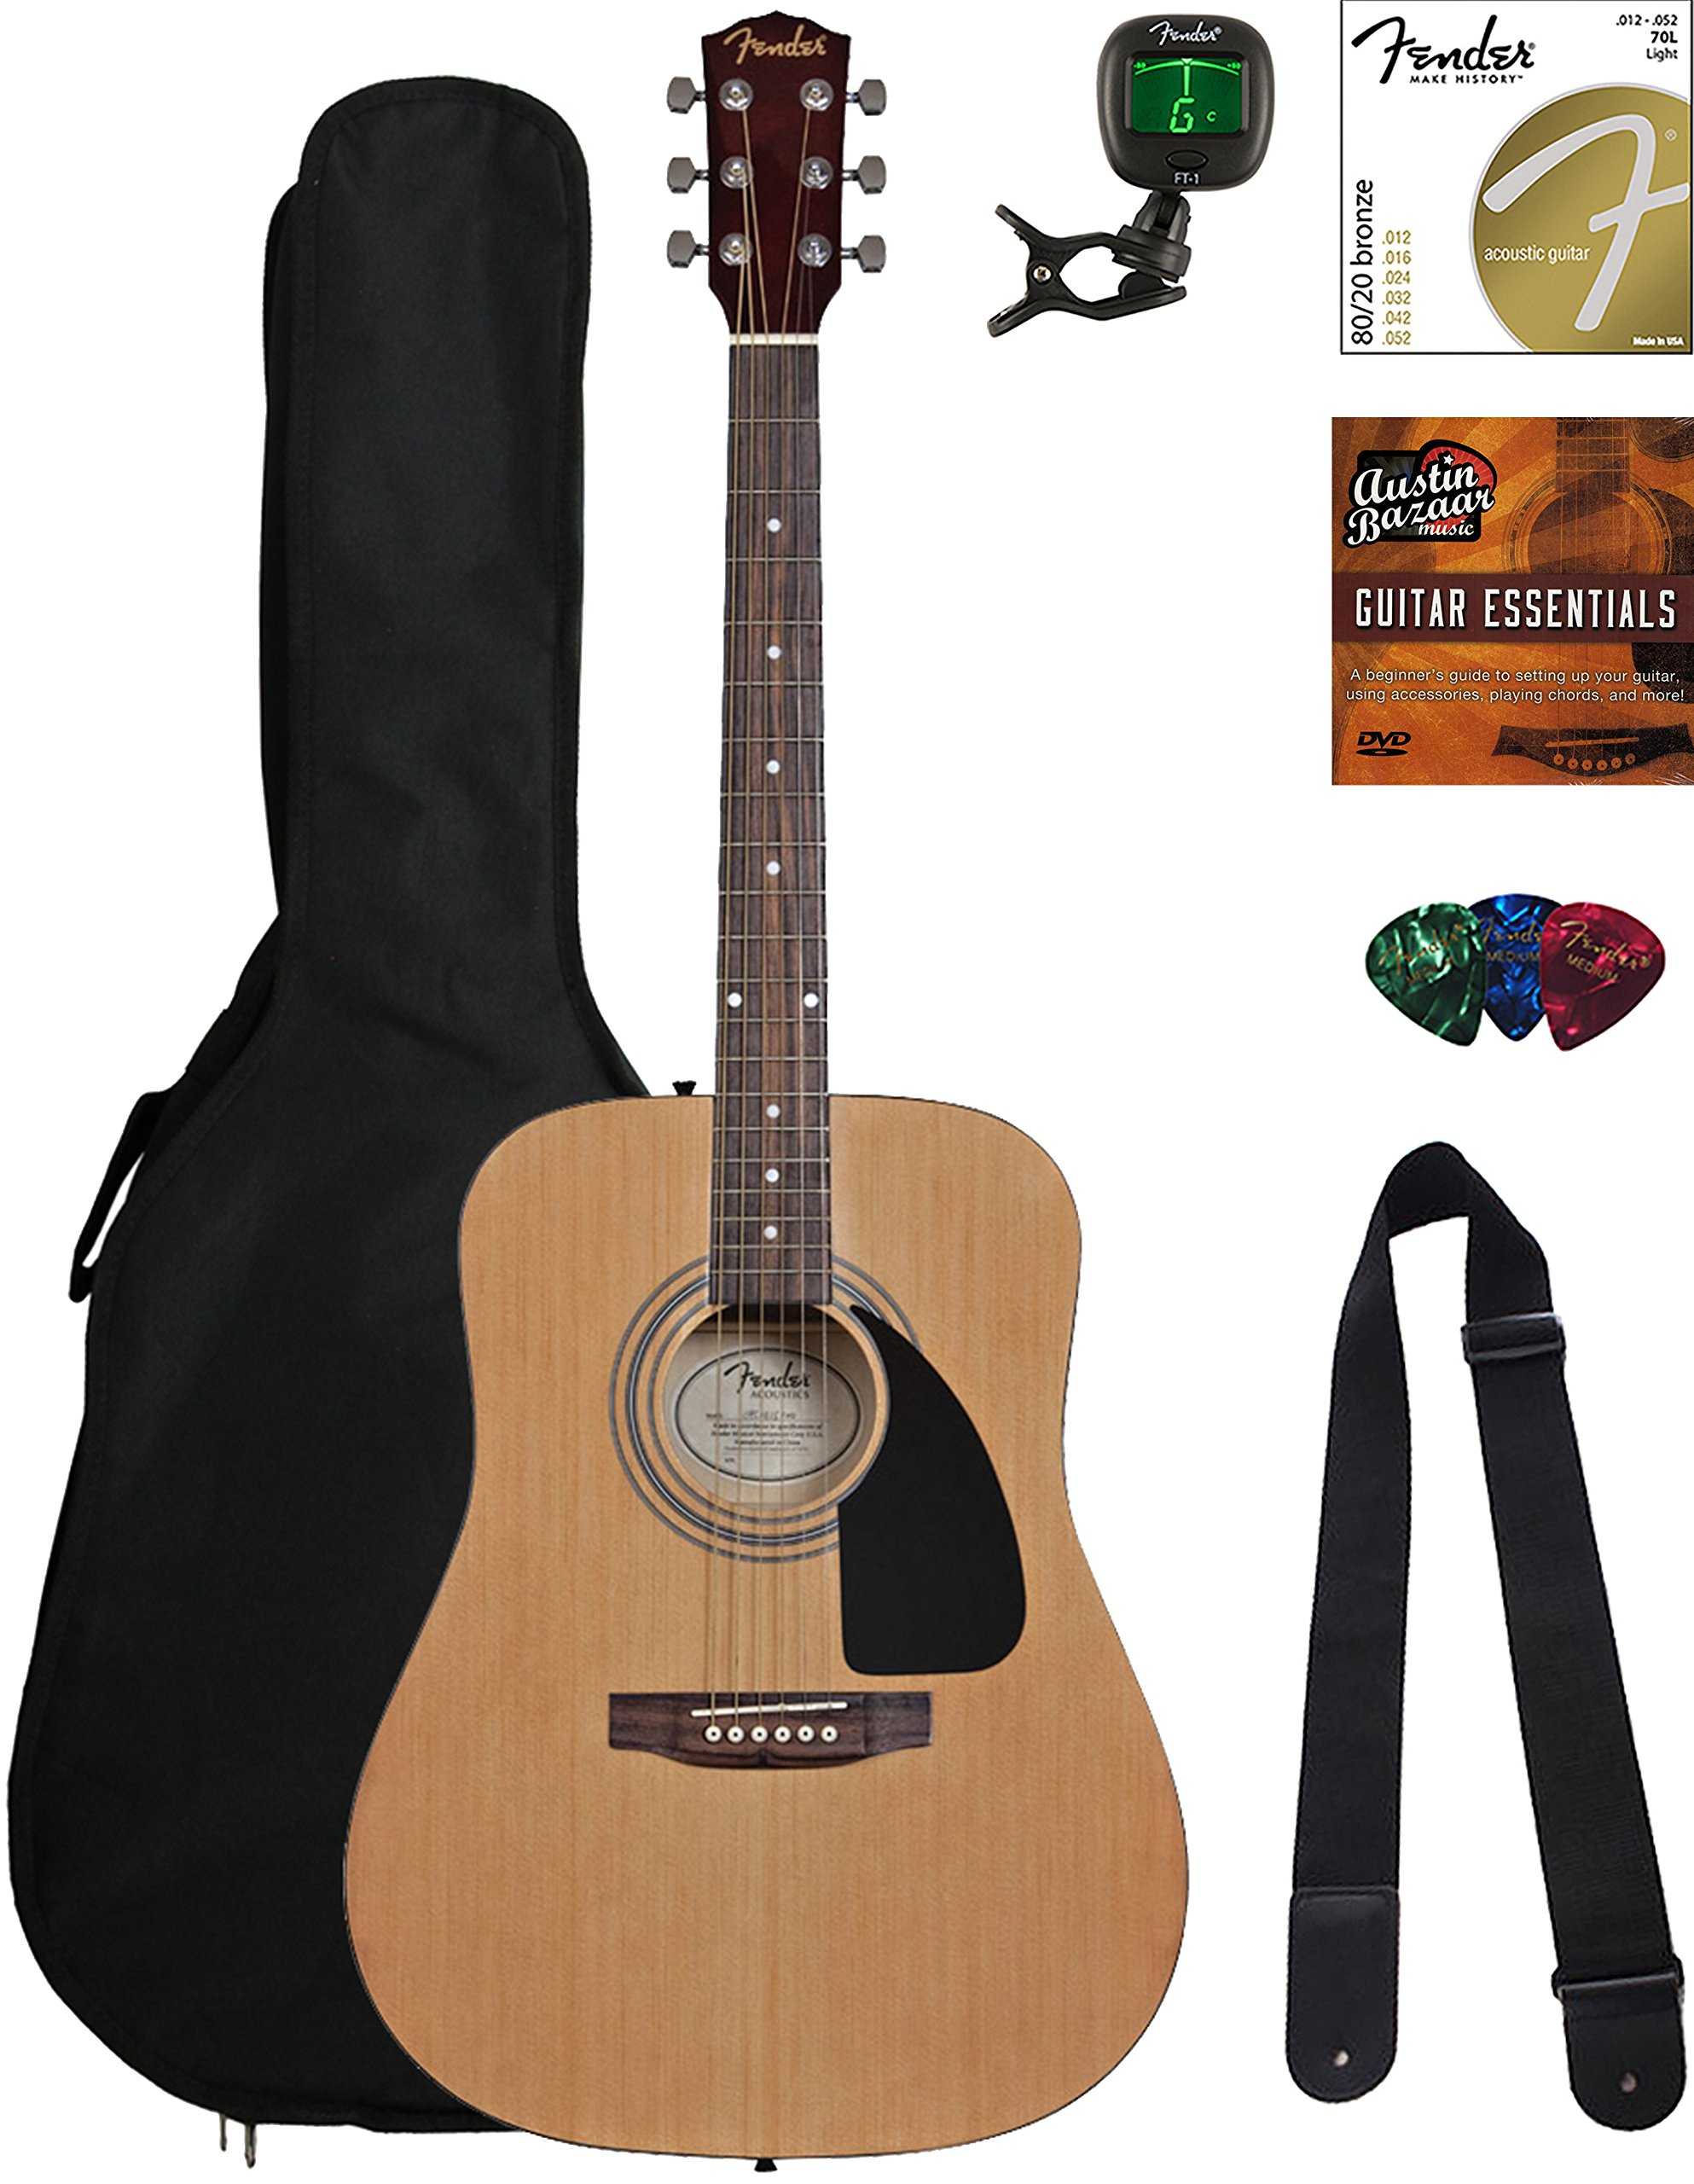 Fender Acoustic Guitar Bundle with Gig Bag, Tuner, Strings, Strap, Picks, Austin Bazaar Instructional DVD, and Polishing Cloth by Fender